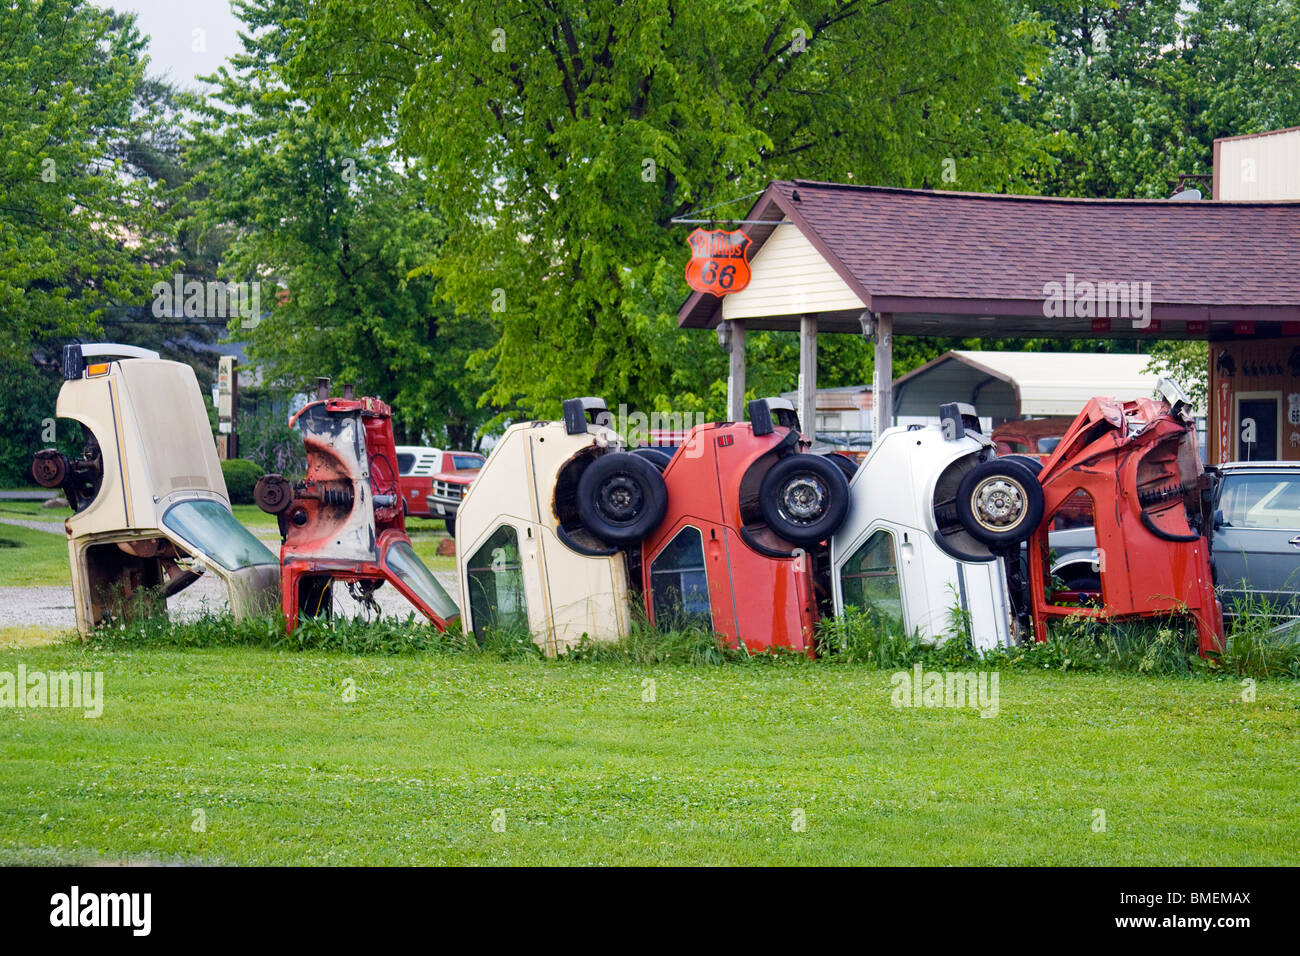 Henry's Ra66it Ranch on old Route 66 in Staunton Illinois - Stock Image